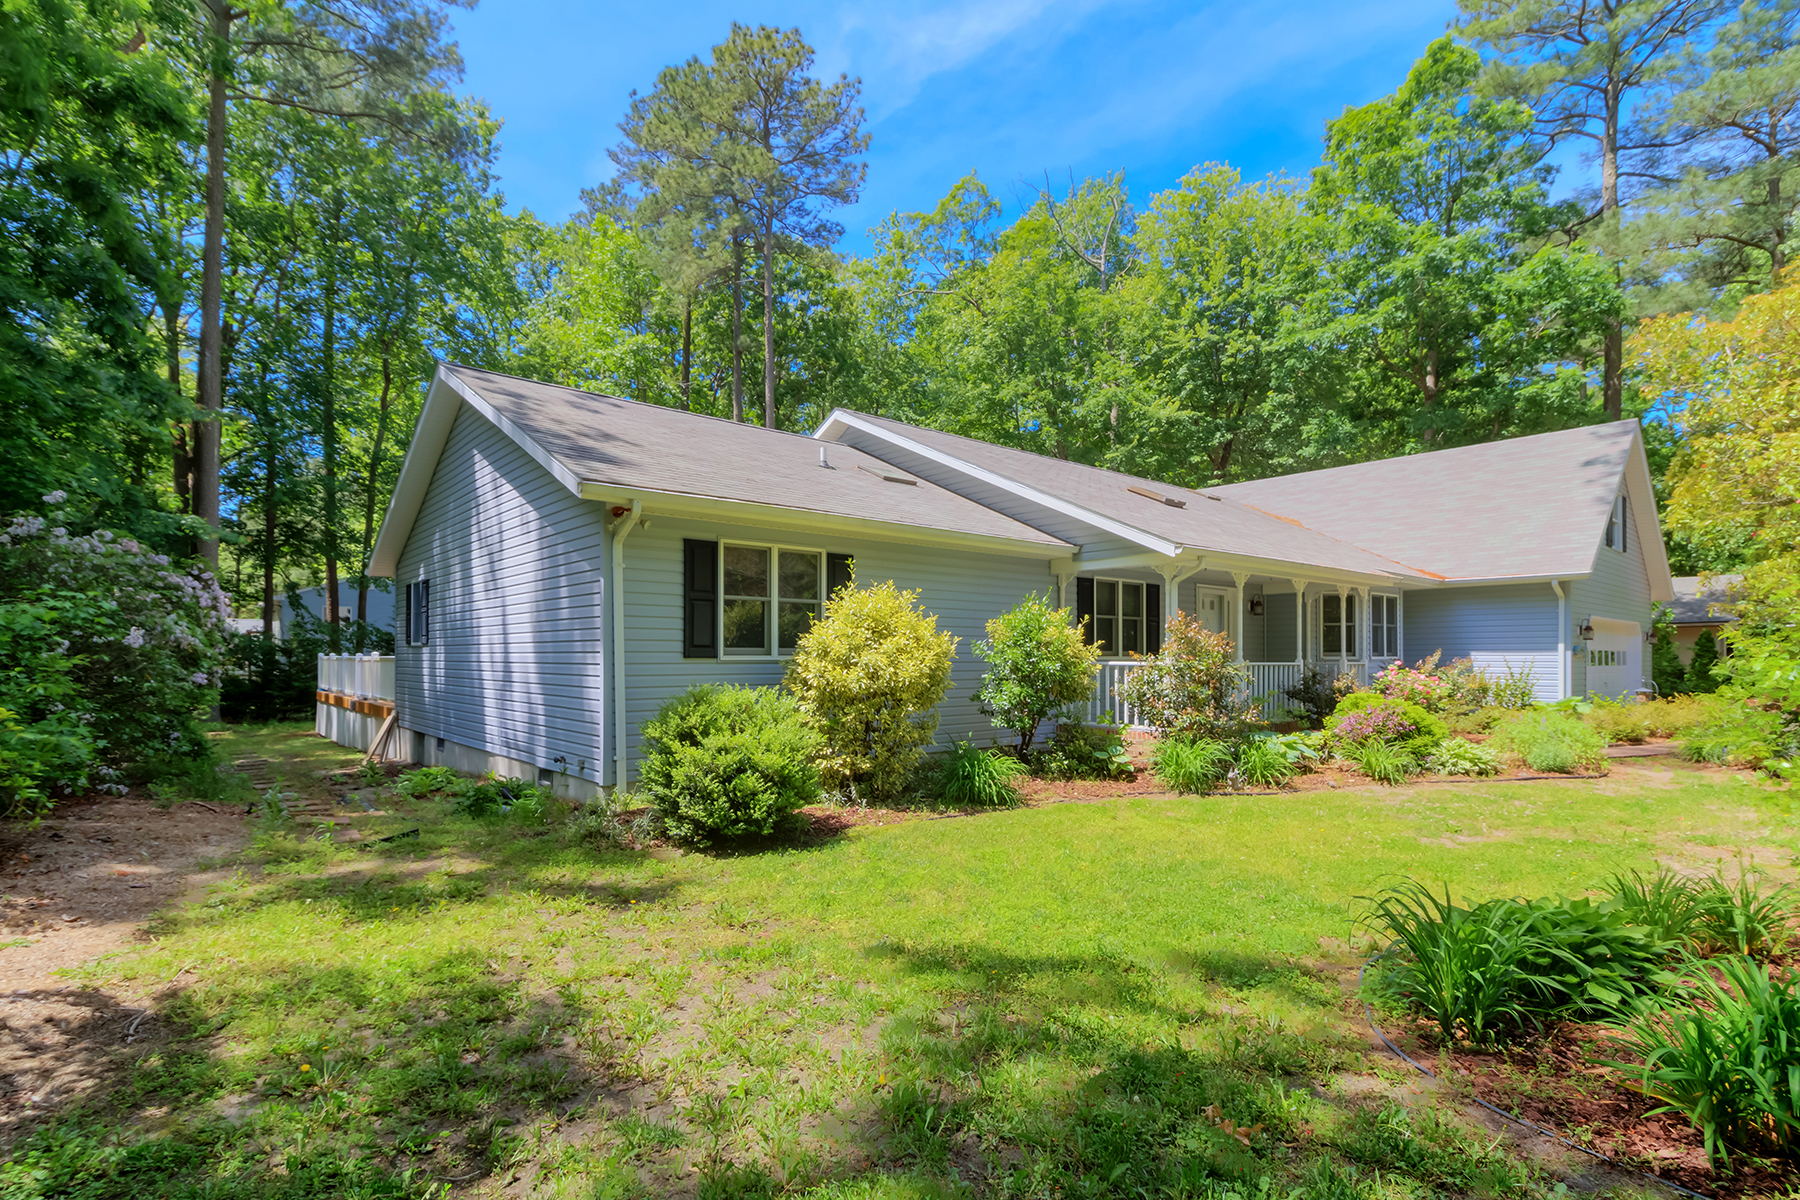 Single Family Homes for Sale at 32 Harpoon Road Ocean Pines, Maryland 21811 United States